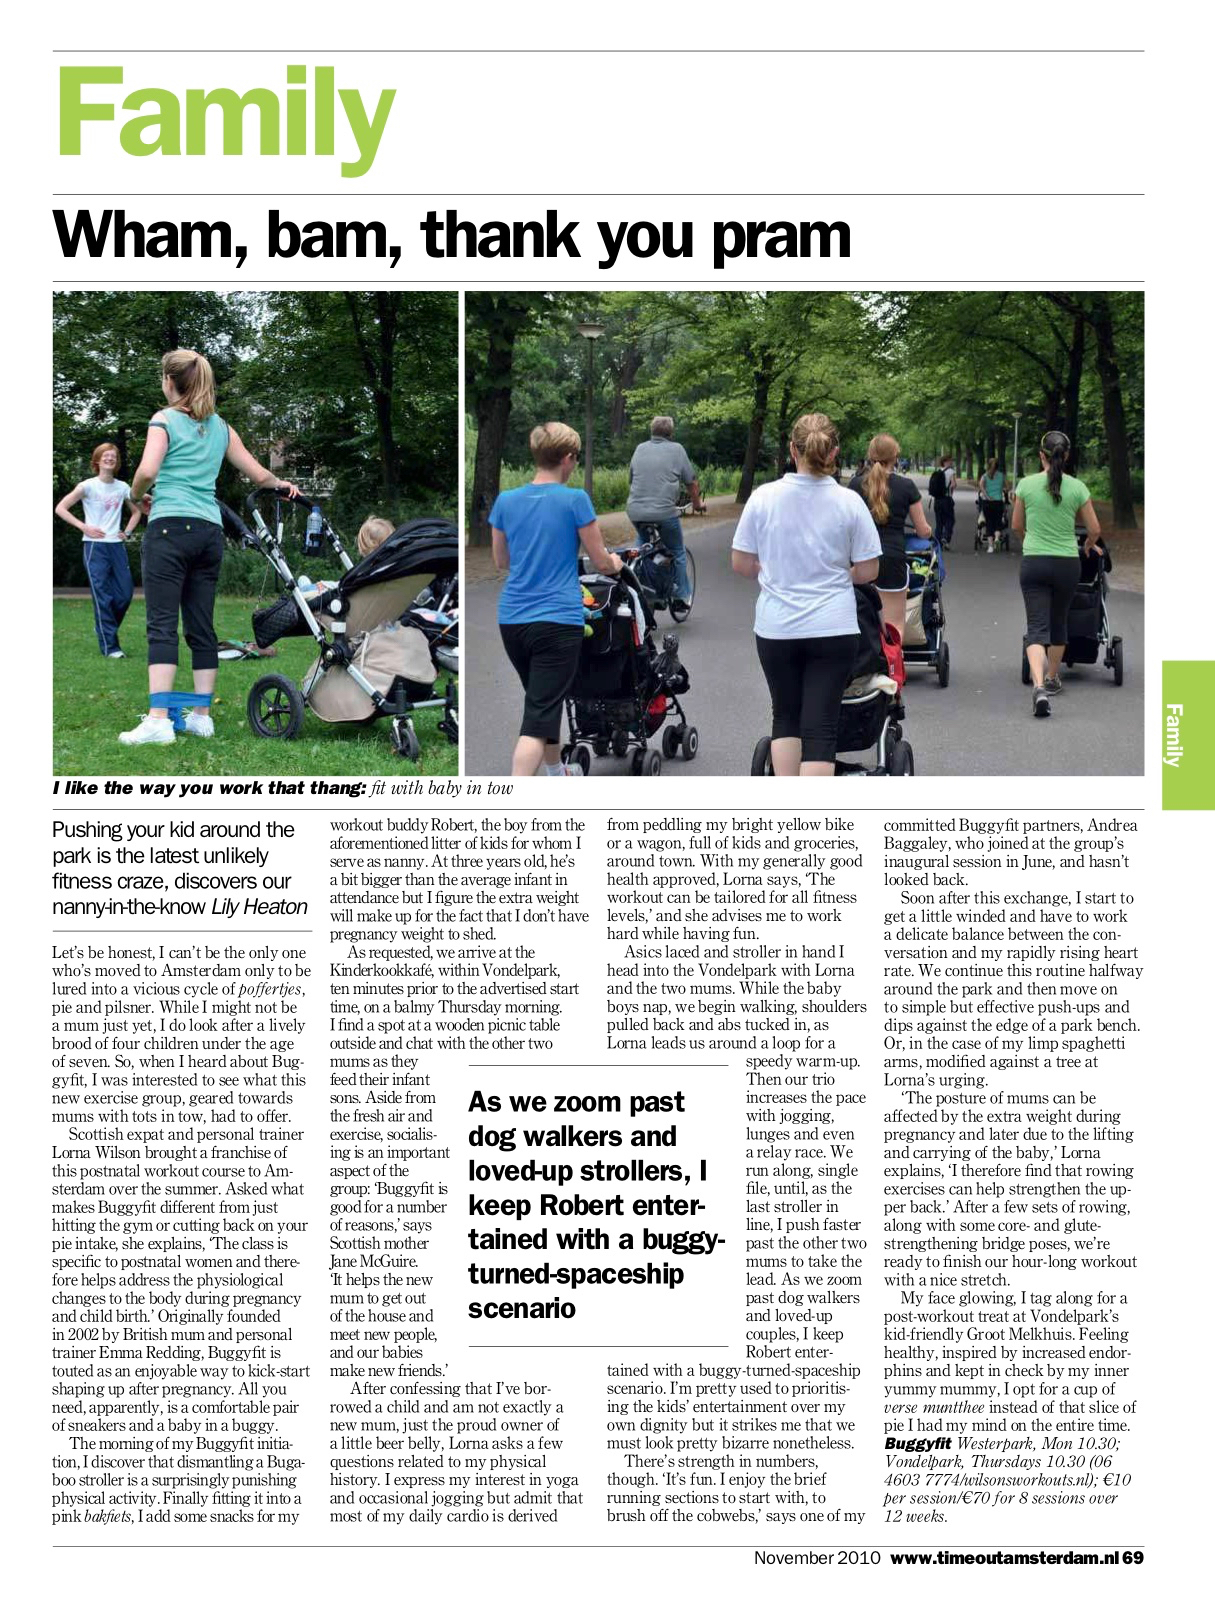 Time Out Amsterdam November 2010 | Family Feature